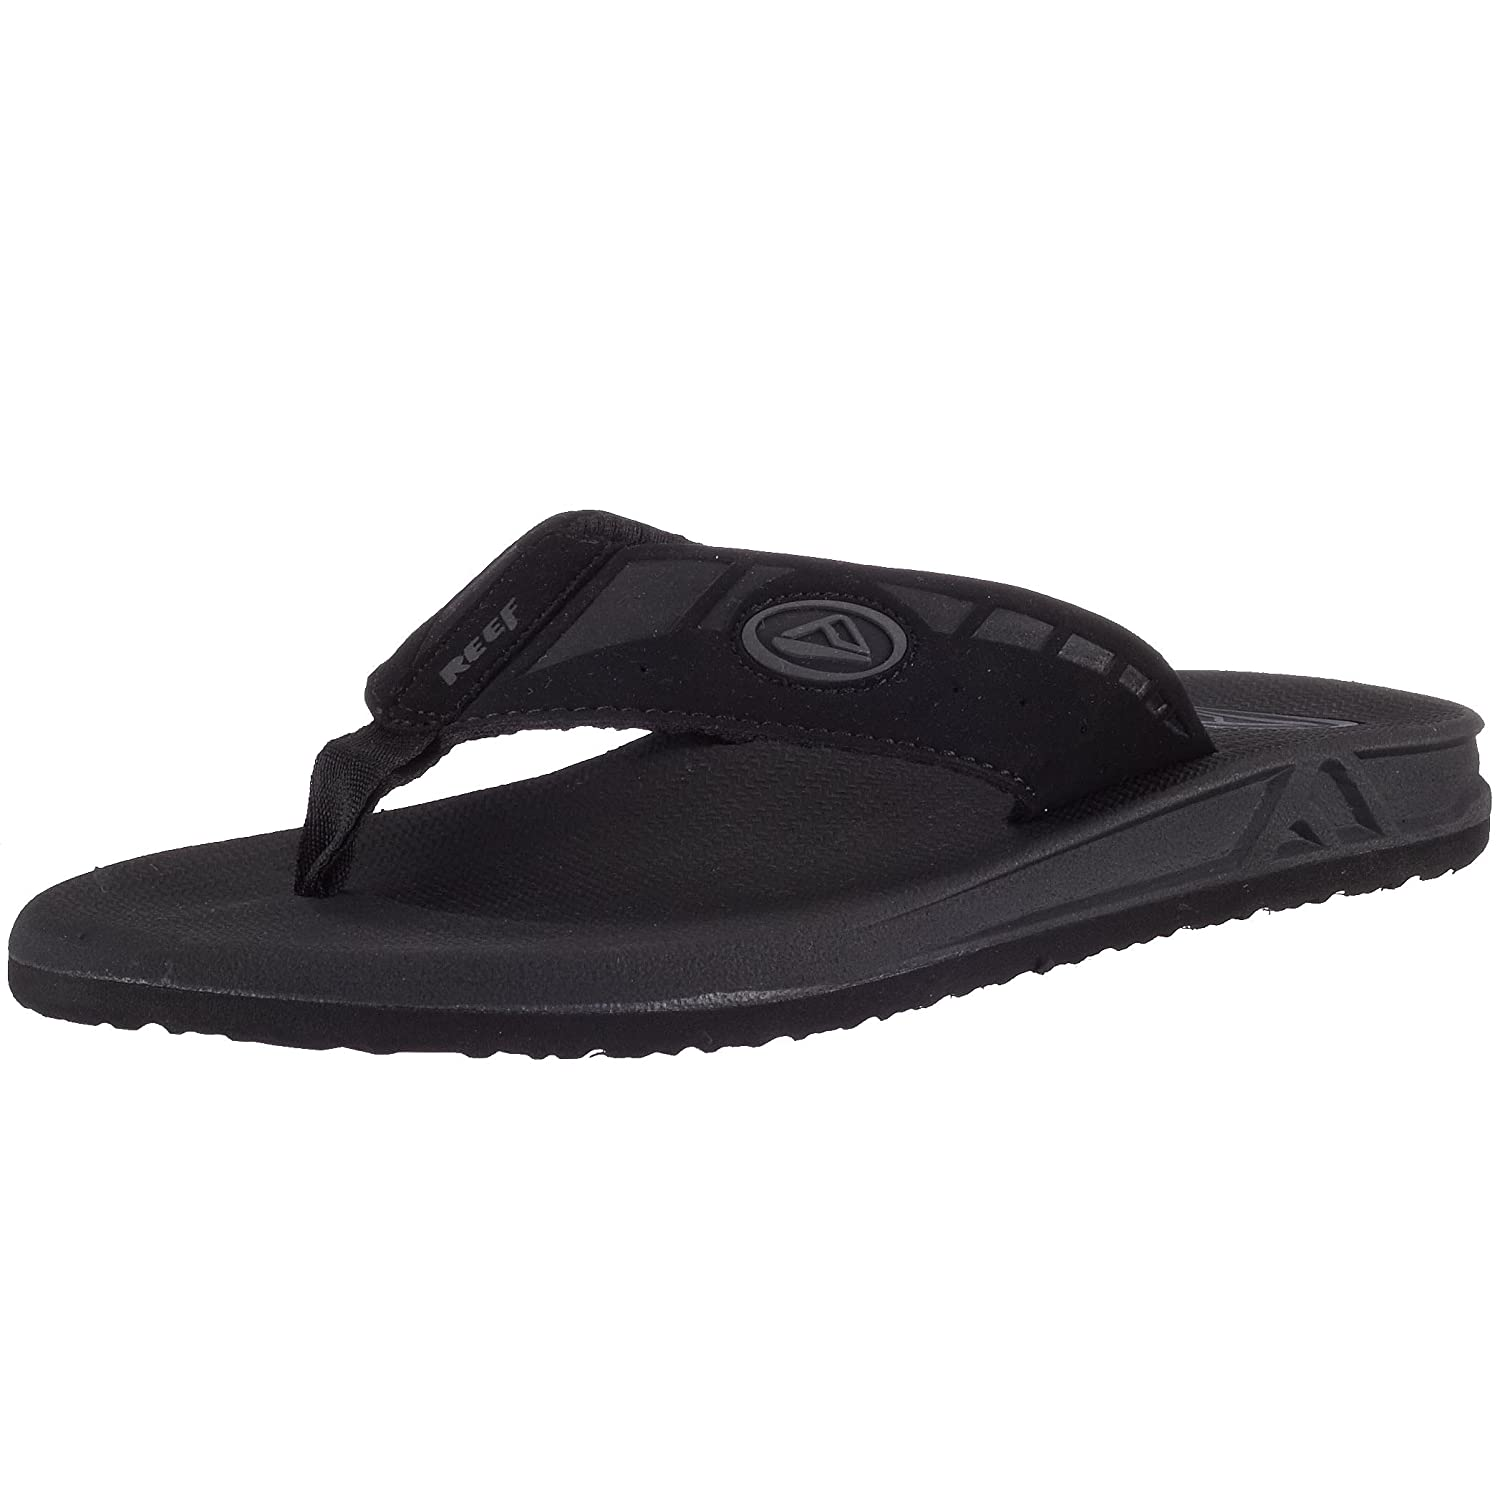 4345bdd89563 Amazon.com  Reef Phantom Mens Sandals